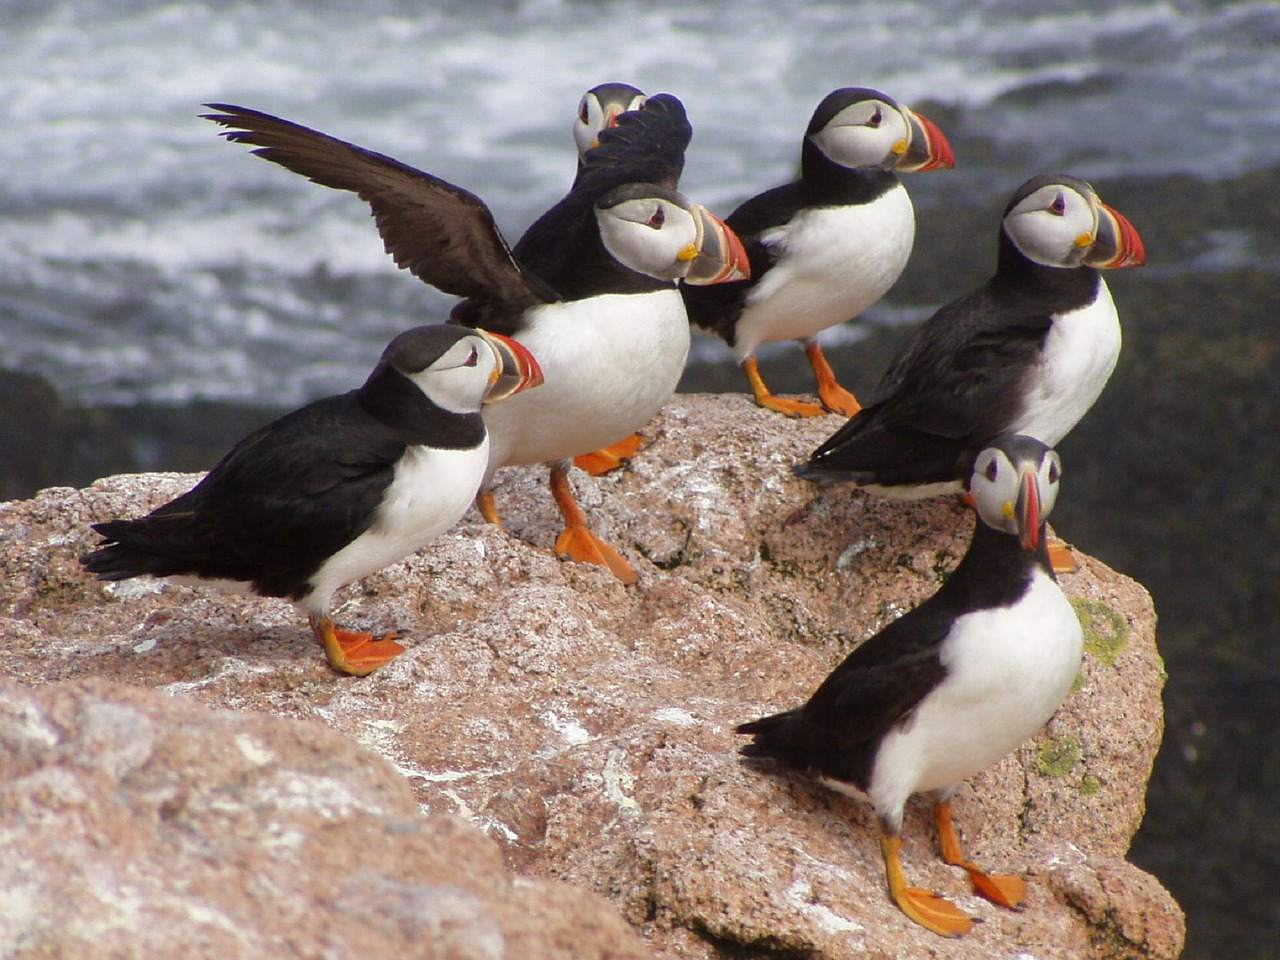 Several Atlantic puffins resting on a rock.